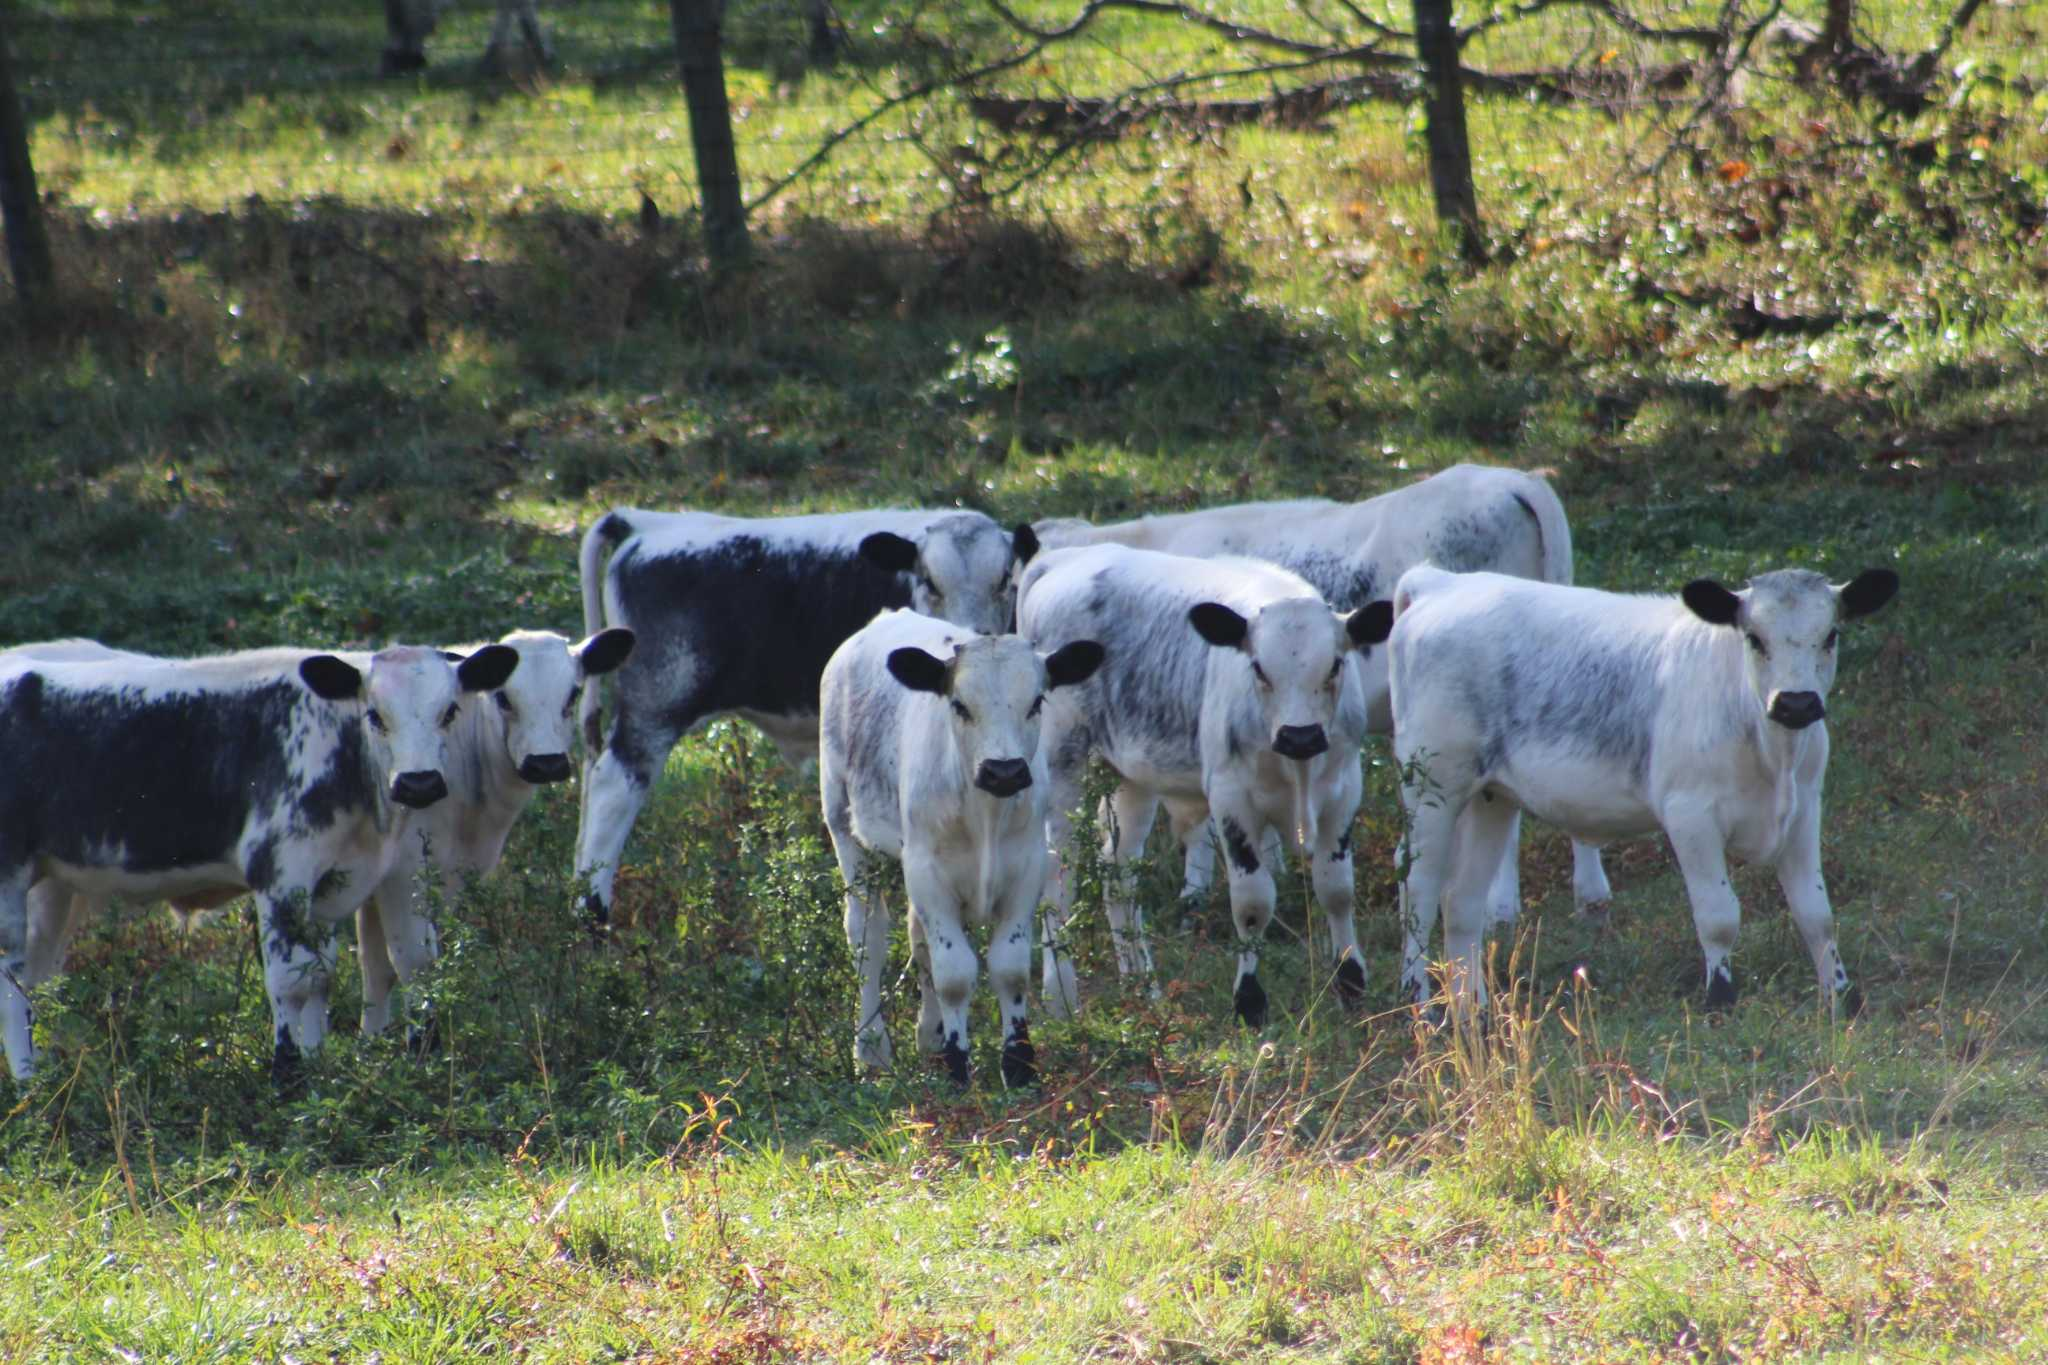 Home of rare cattle protected